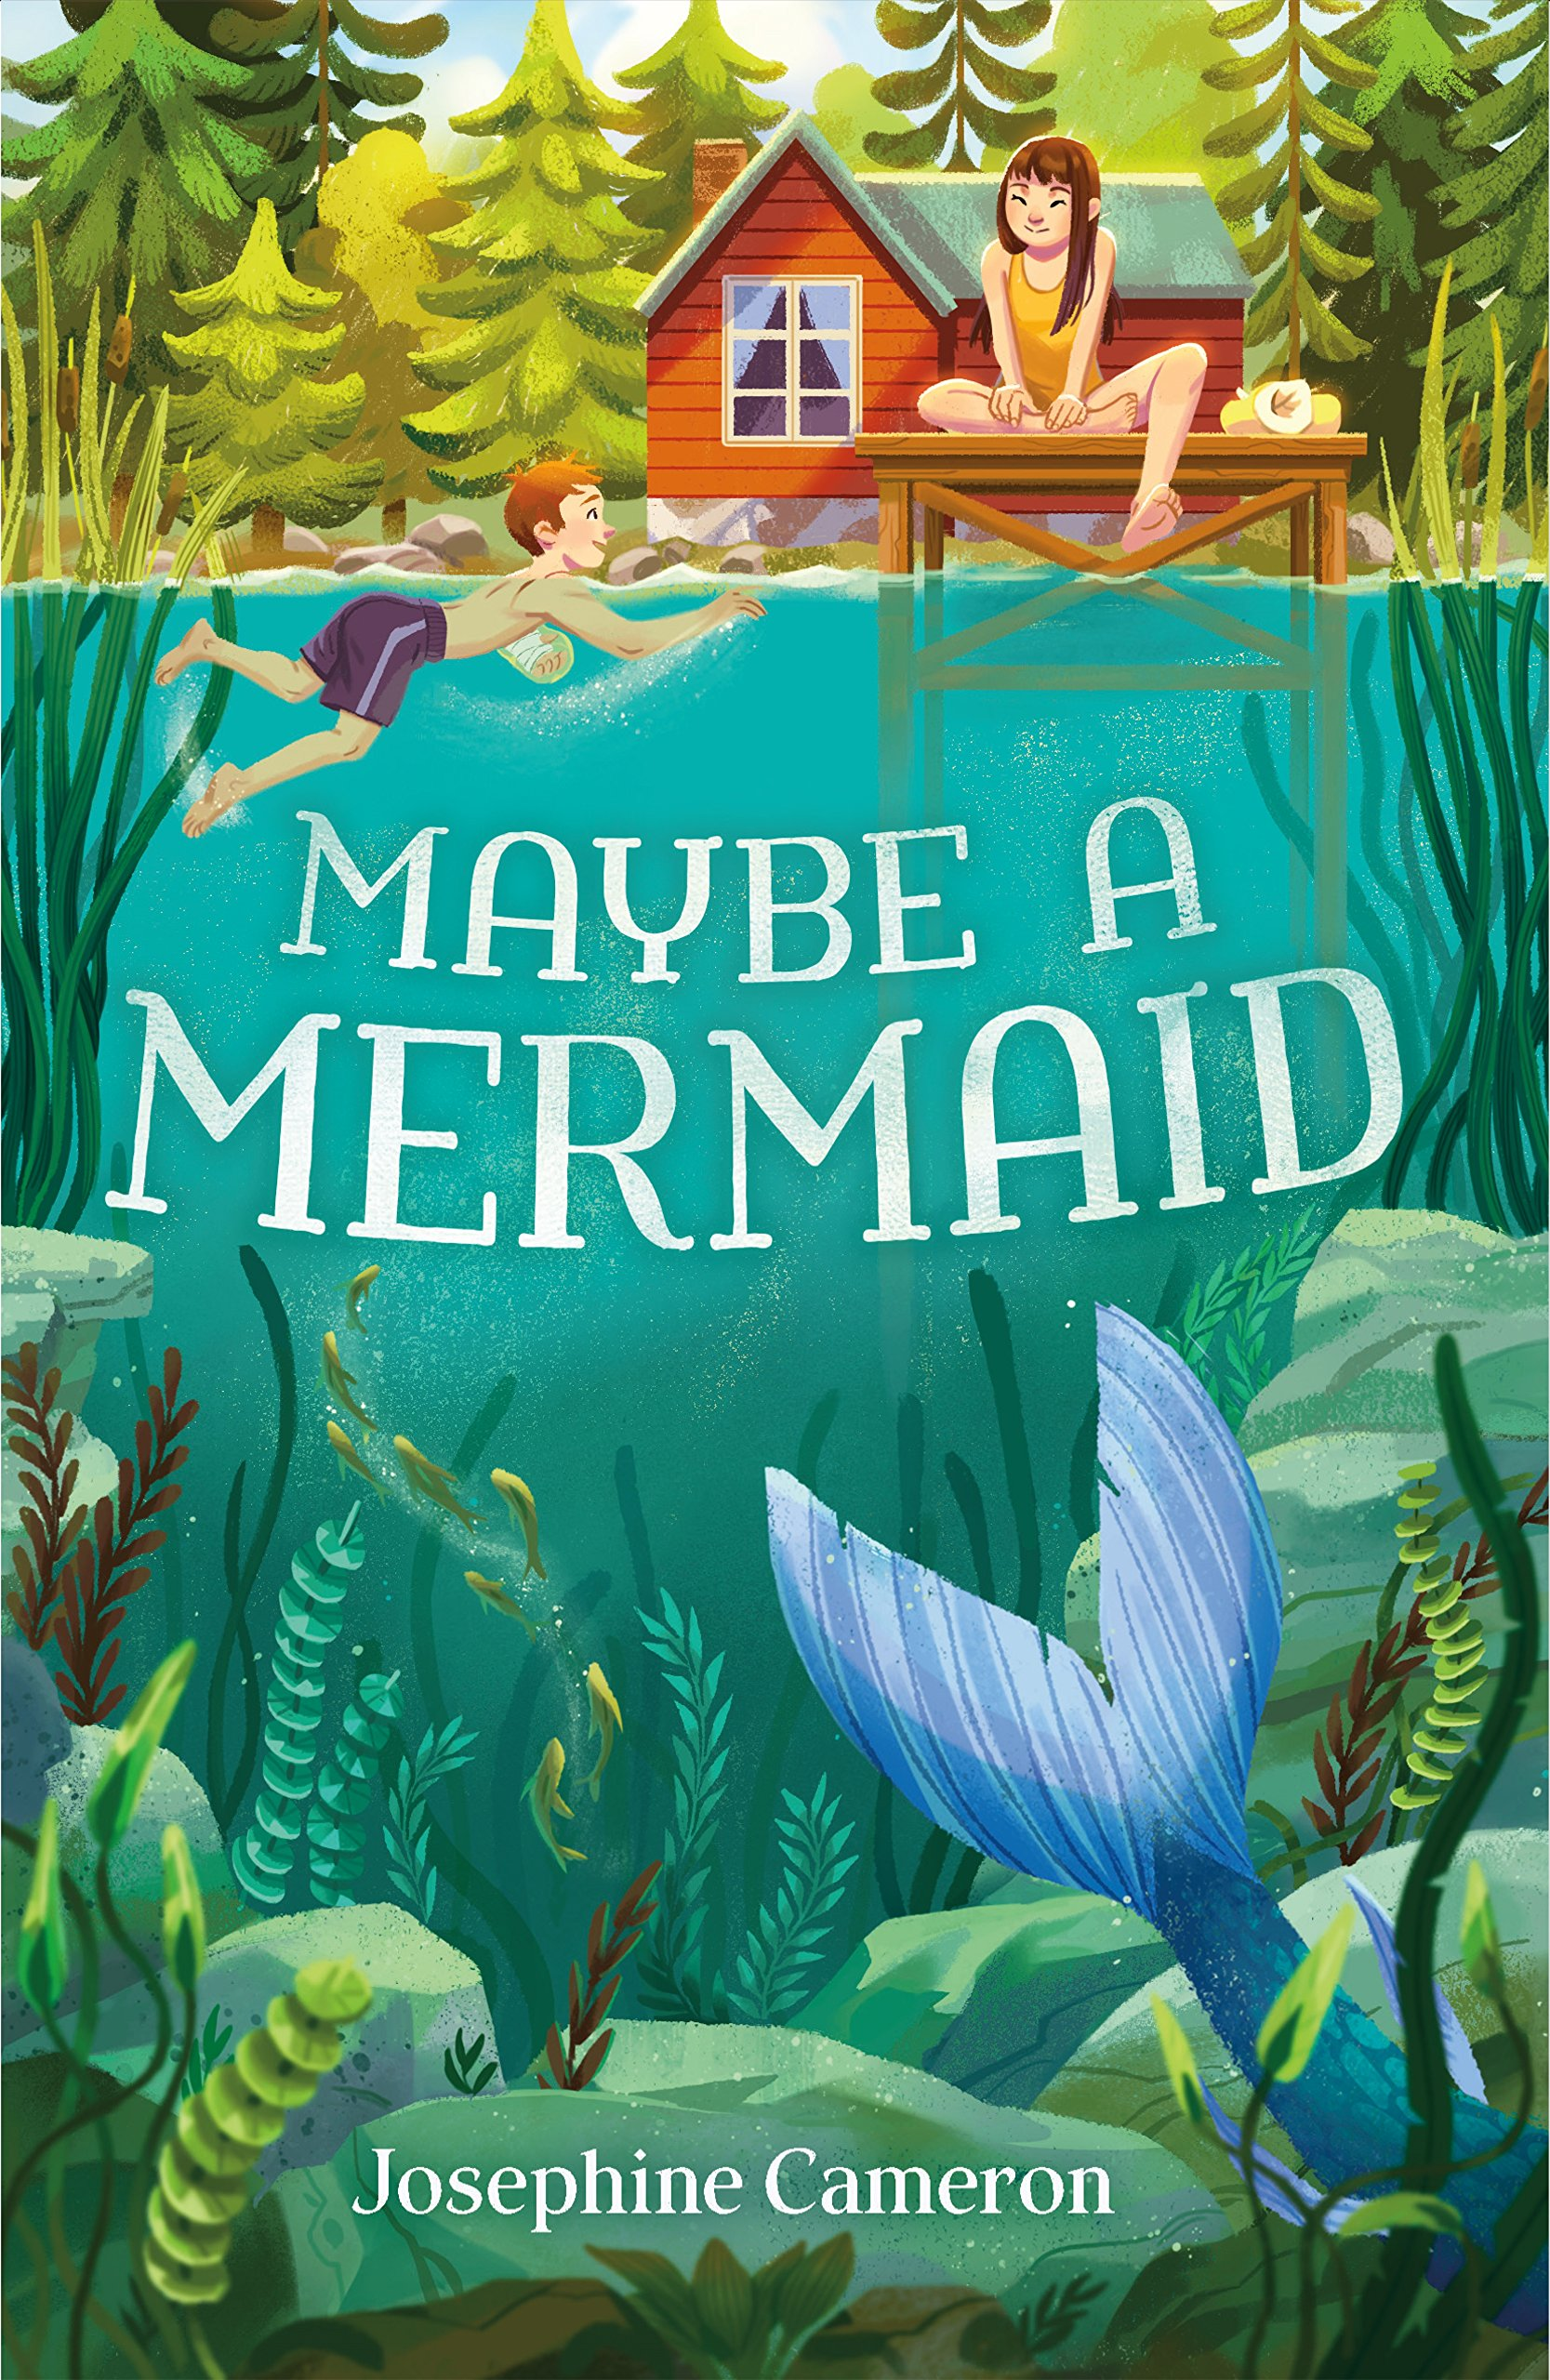 Image result for Maybe mermaid